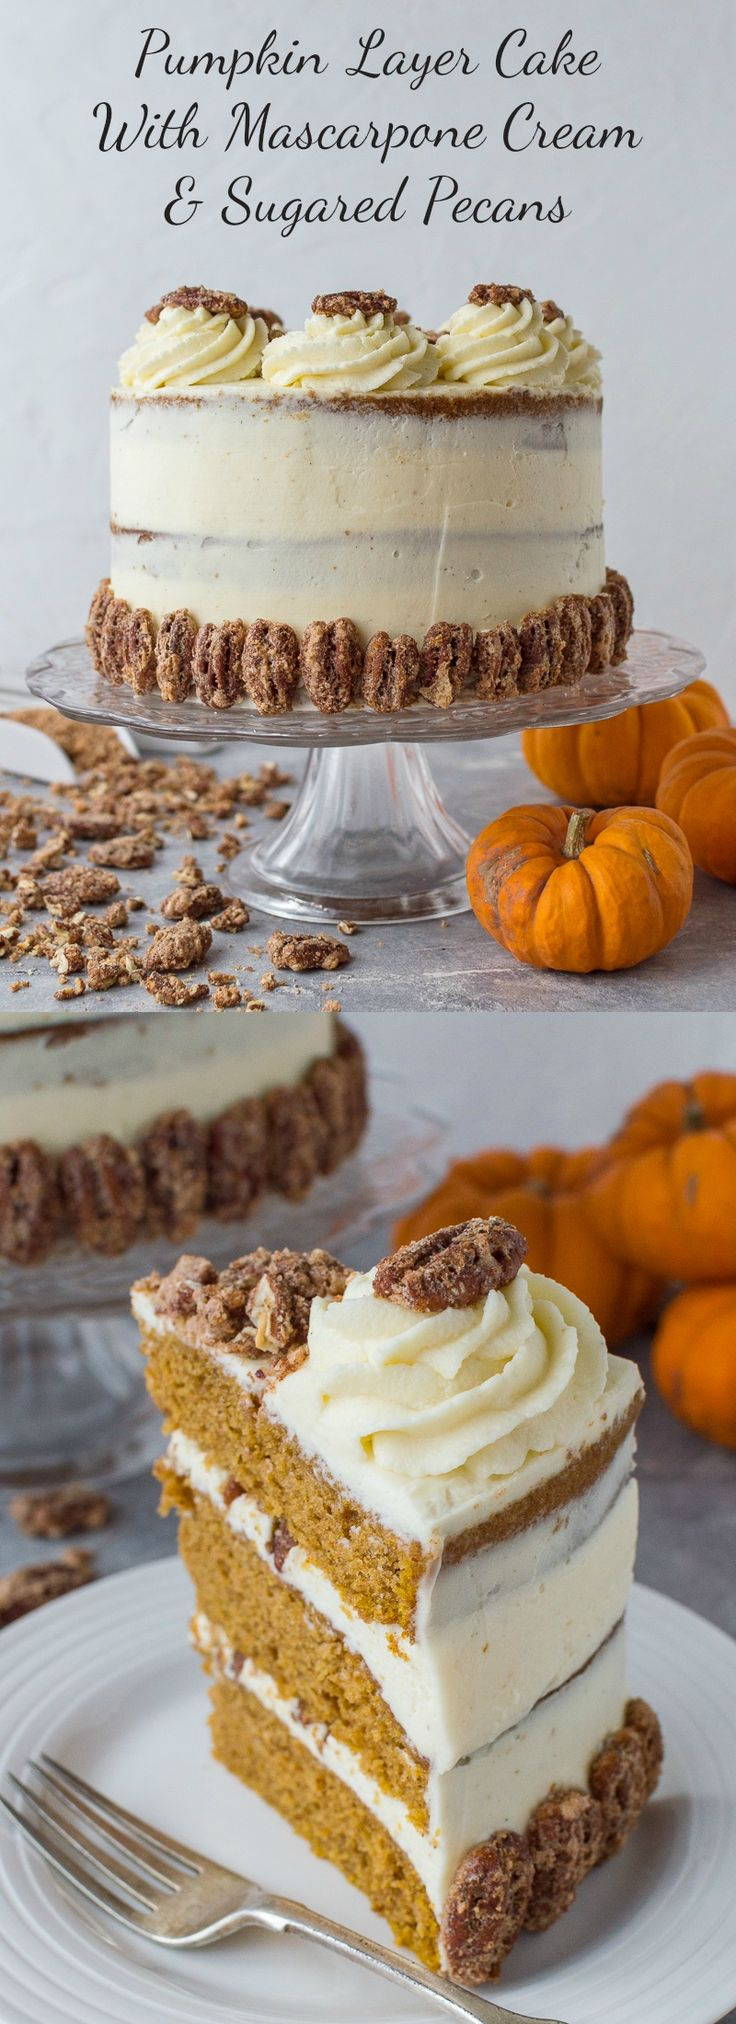 Pumpkin layer cake with mascarpone cream and sugared pecans - utterly irresistible! #pumpkin #cake #pumpkinspice #baking